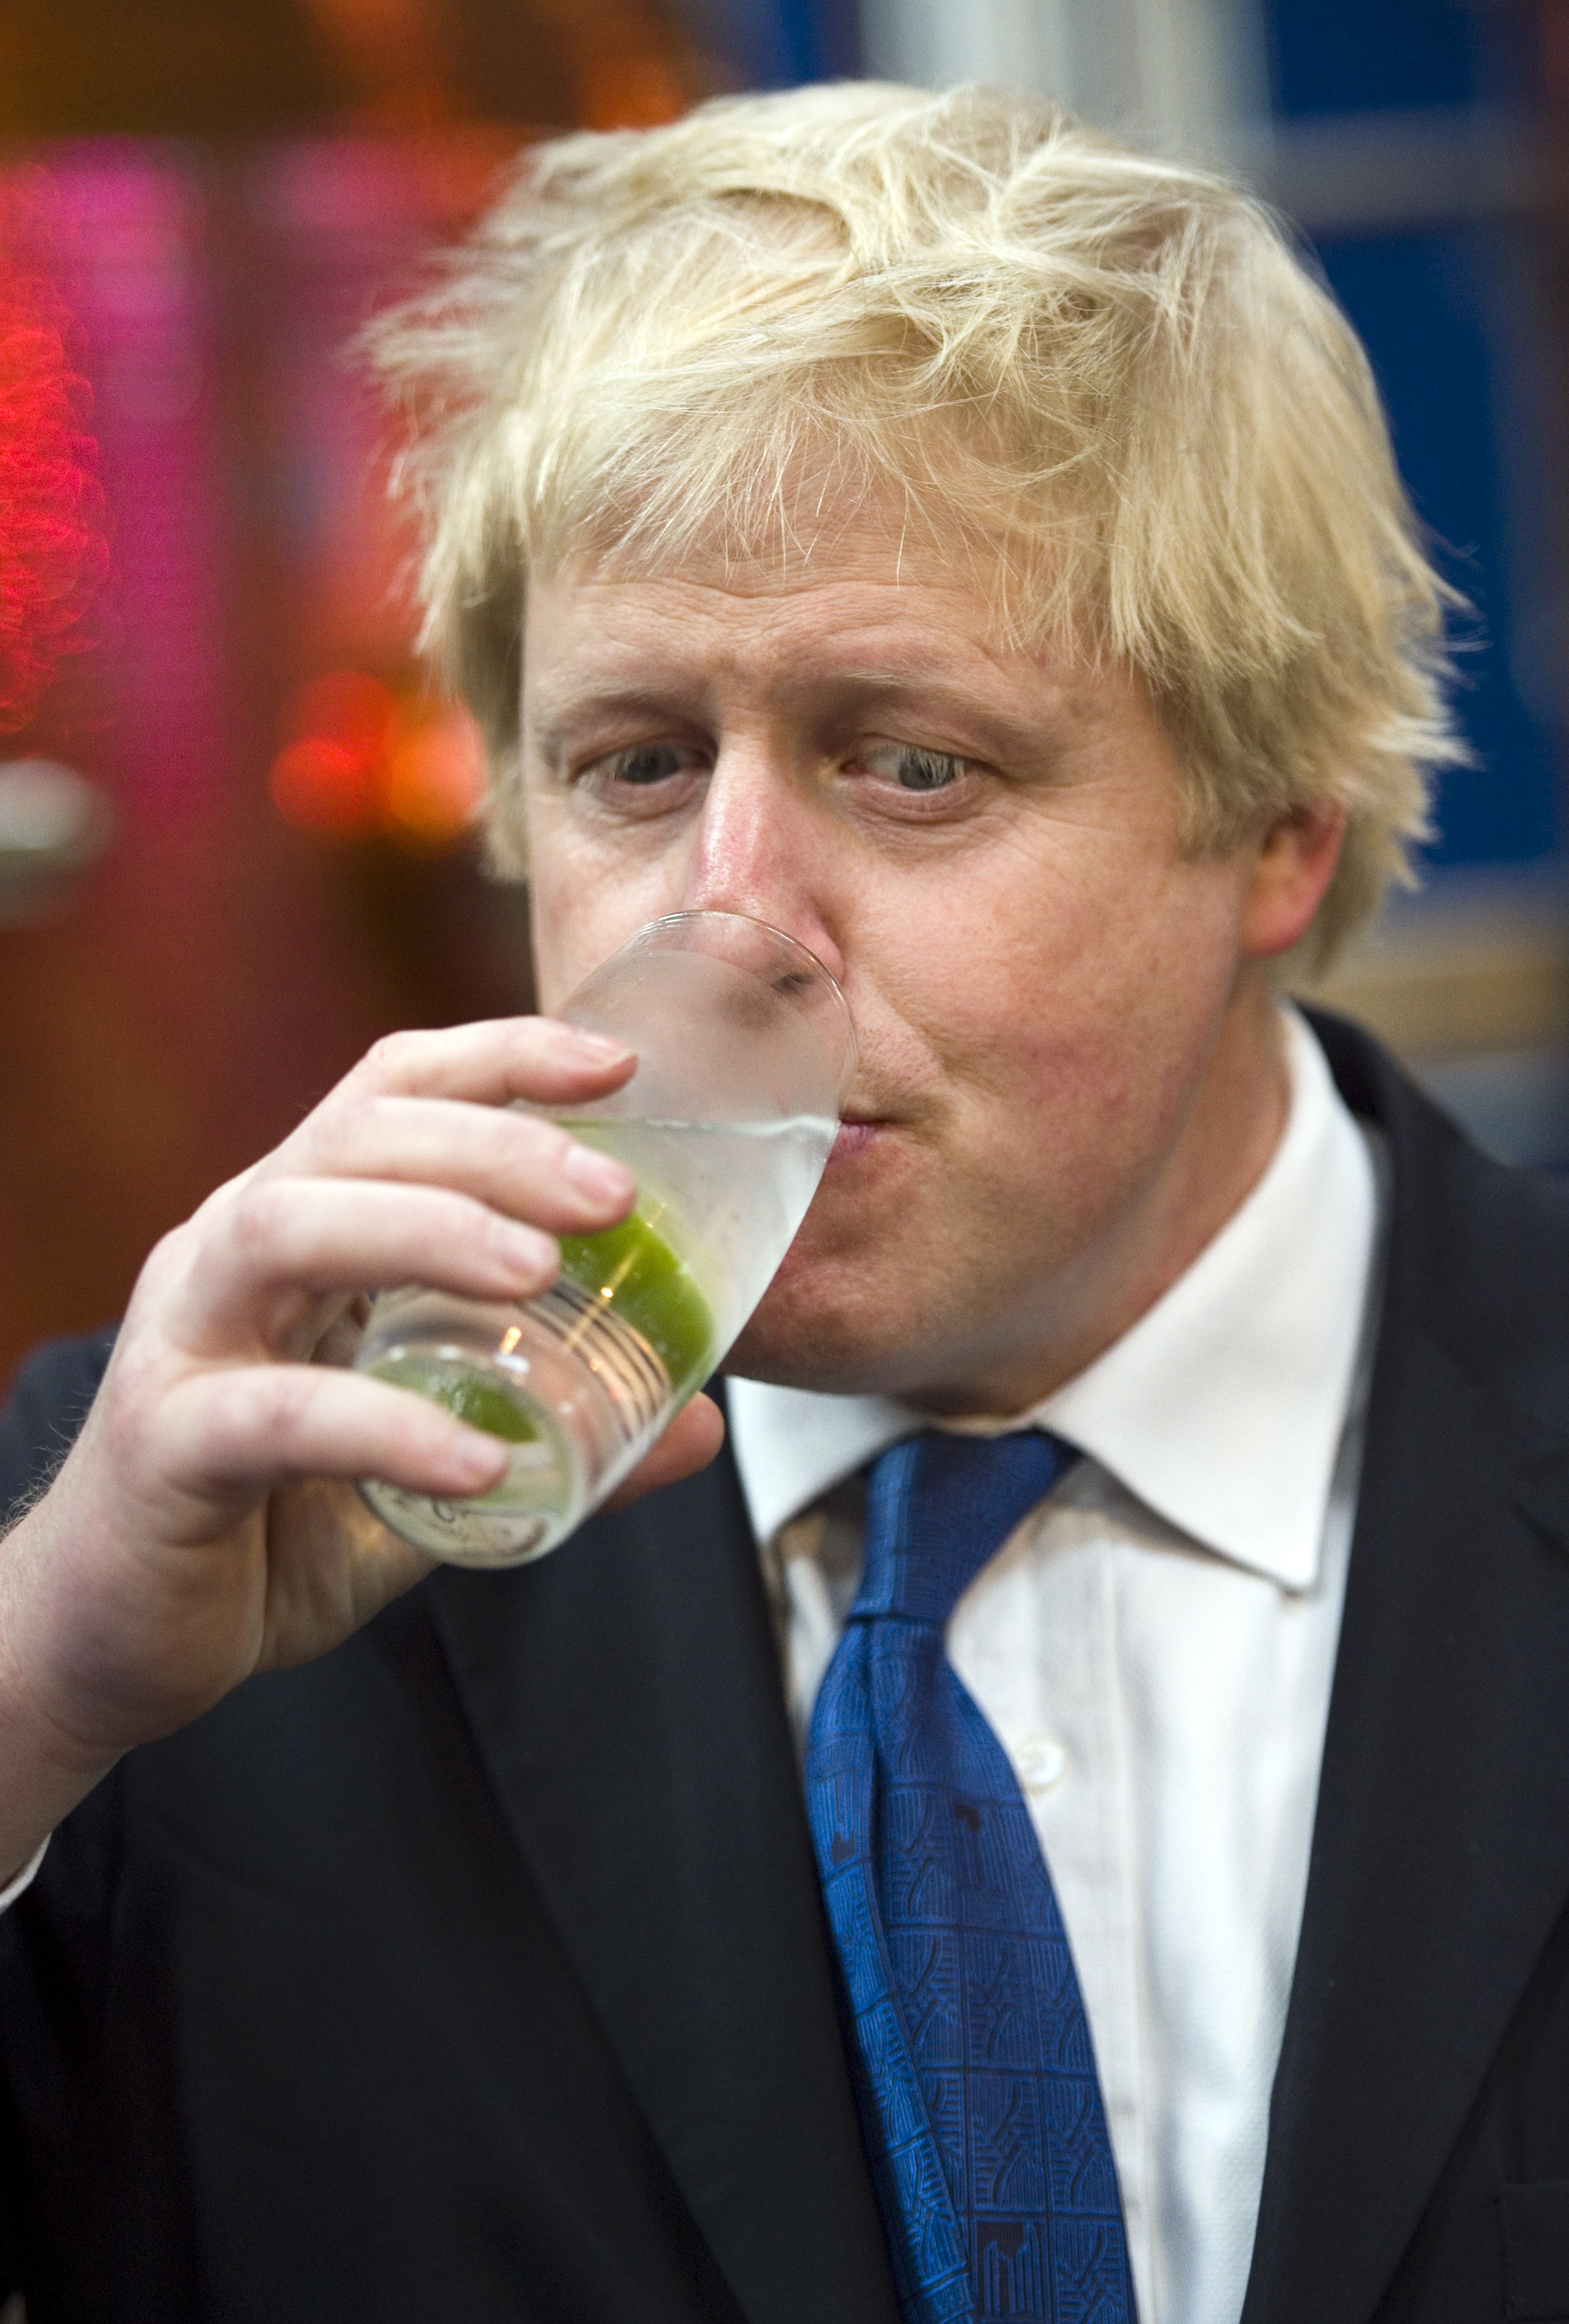 Mayor of London Boris Johnson samples Gin during a visit to Sipsmith's Gin distillery in Chiswick, London, the first copper distillery in the capital for 200 years. PRESS ASSOCIATION Photo. Picture date: Friday April 17, 2015. Mr Johnson has not ruled out becoming a minister in the first year of a Tory government but said David Cameron would not be in favour of such a move. Mr Johnson insisted he could not see how a ministerial position would be compatible with his job as Mayor of London, which will end in May 2016. After that the road would be clear for Mr Johnson to be promoted to government if the Tories form it and he becomes MP for Uxbridge and South Ruislip. But Mr Johnson stressed that his current mayoral position was like running a big budget government department already. See PA story ELECTION Boris. Photo credit should read: Anthony Devlin/PA Wire